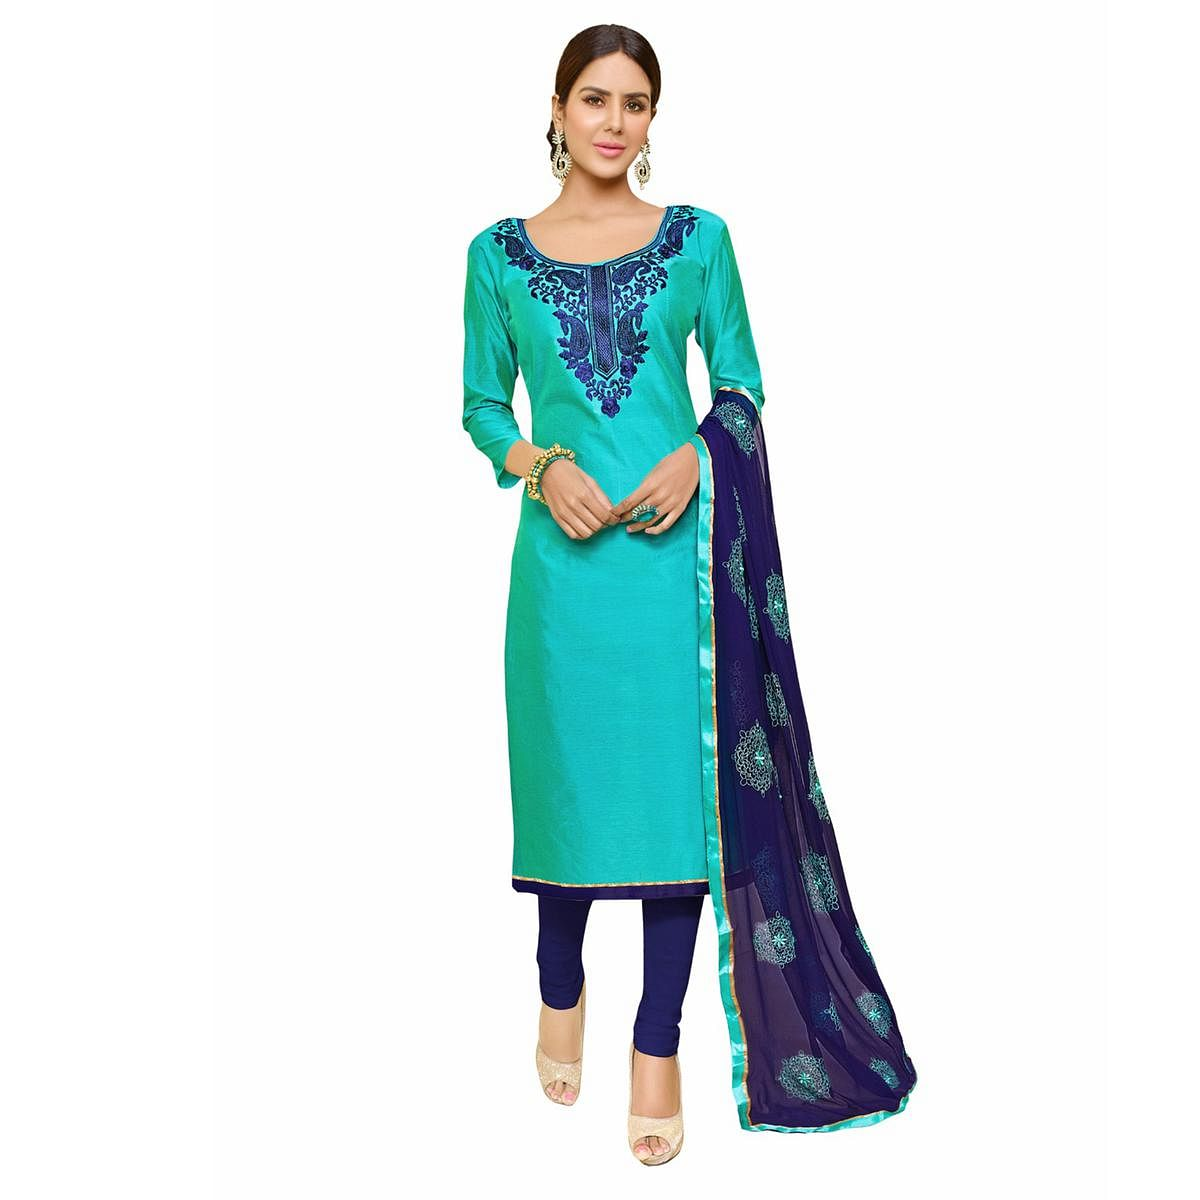 Blooming Aqua Green Colored Embroidered Chanderi Silk Dress Material